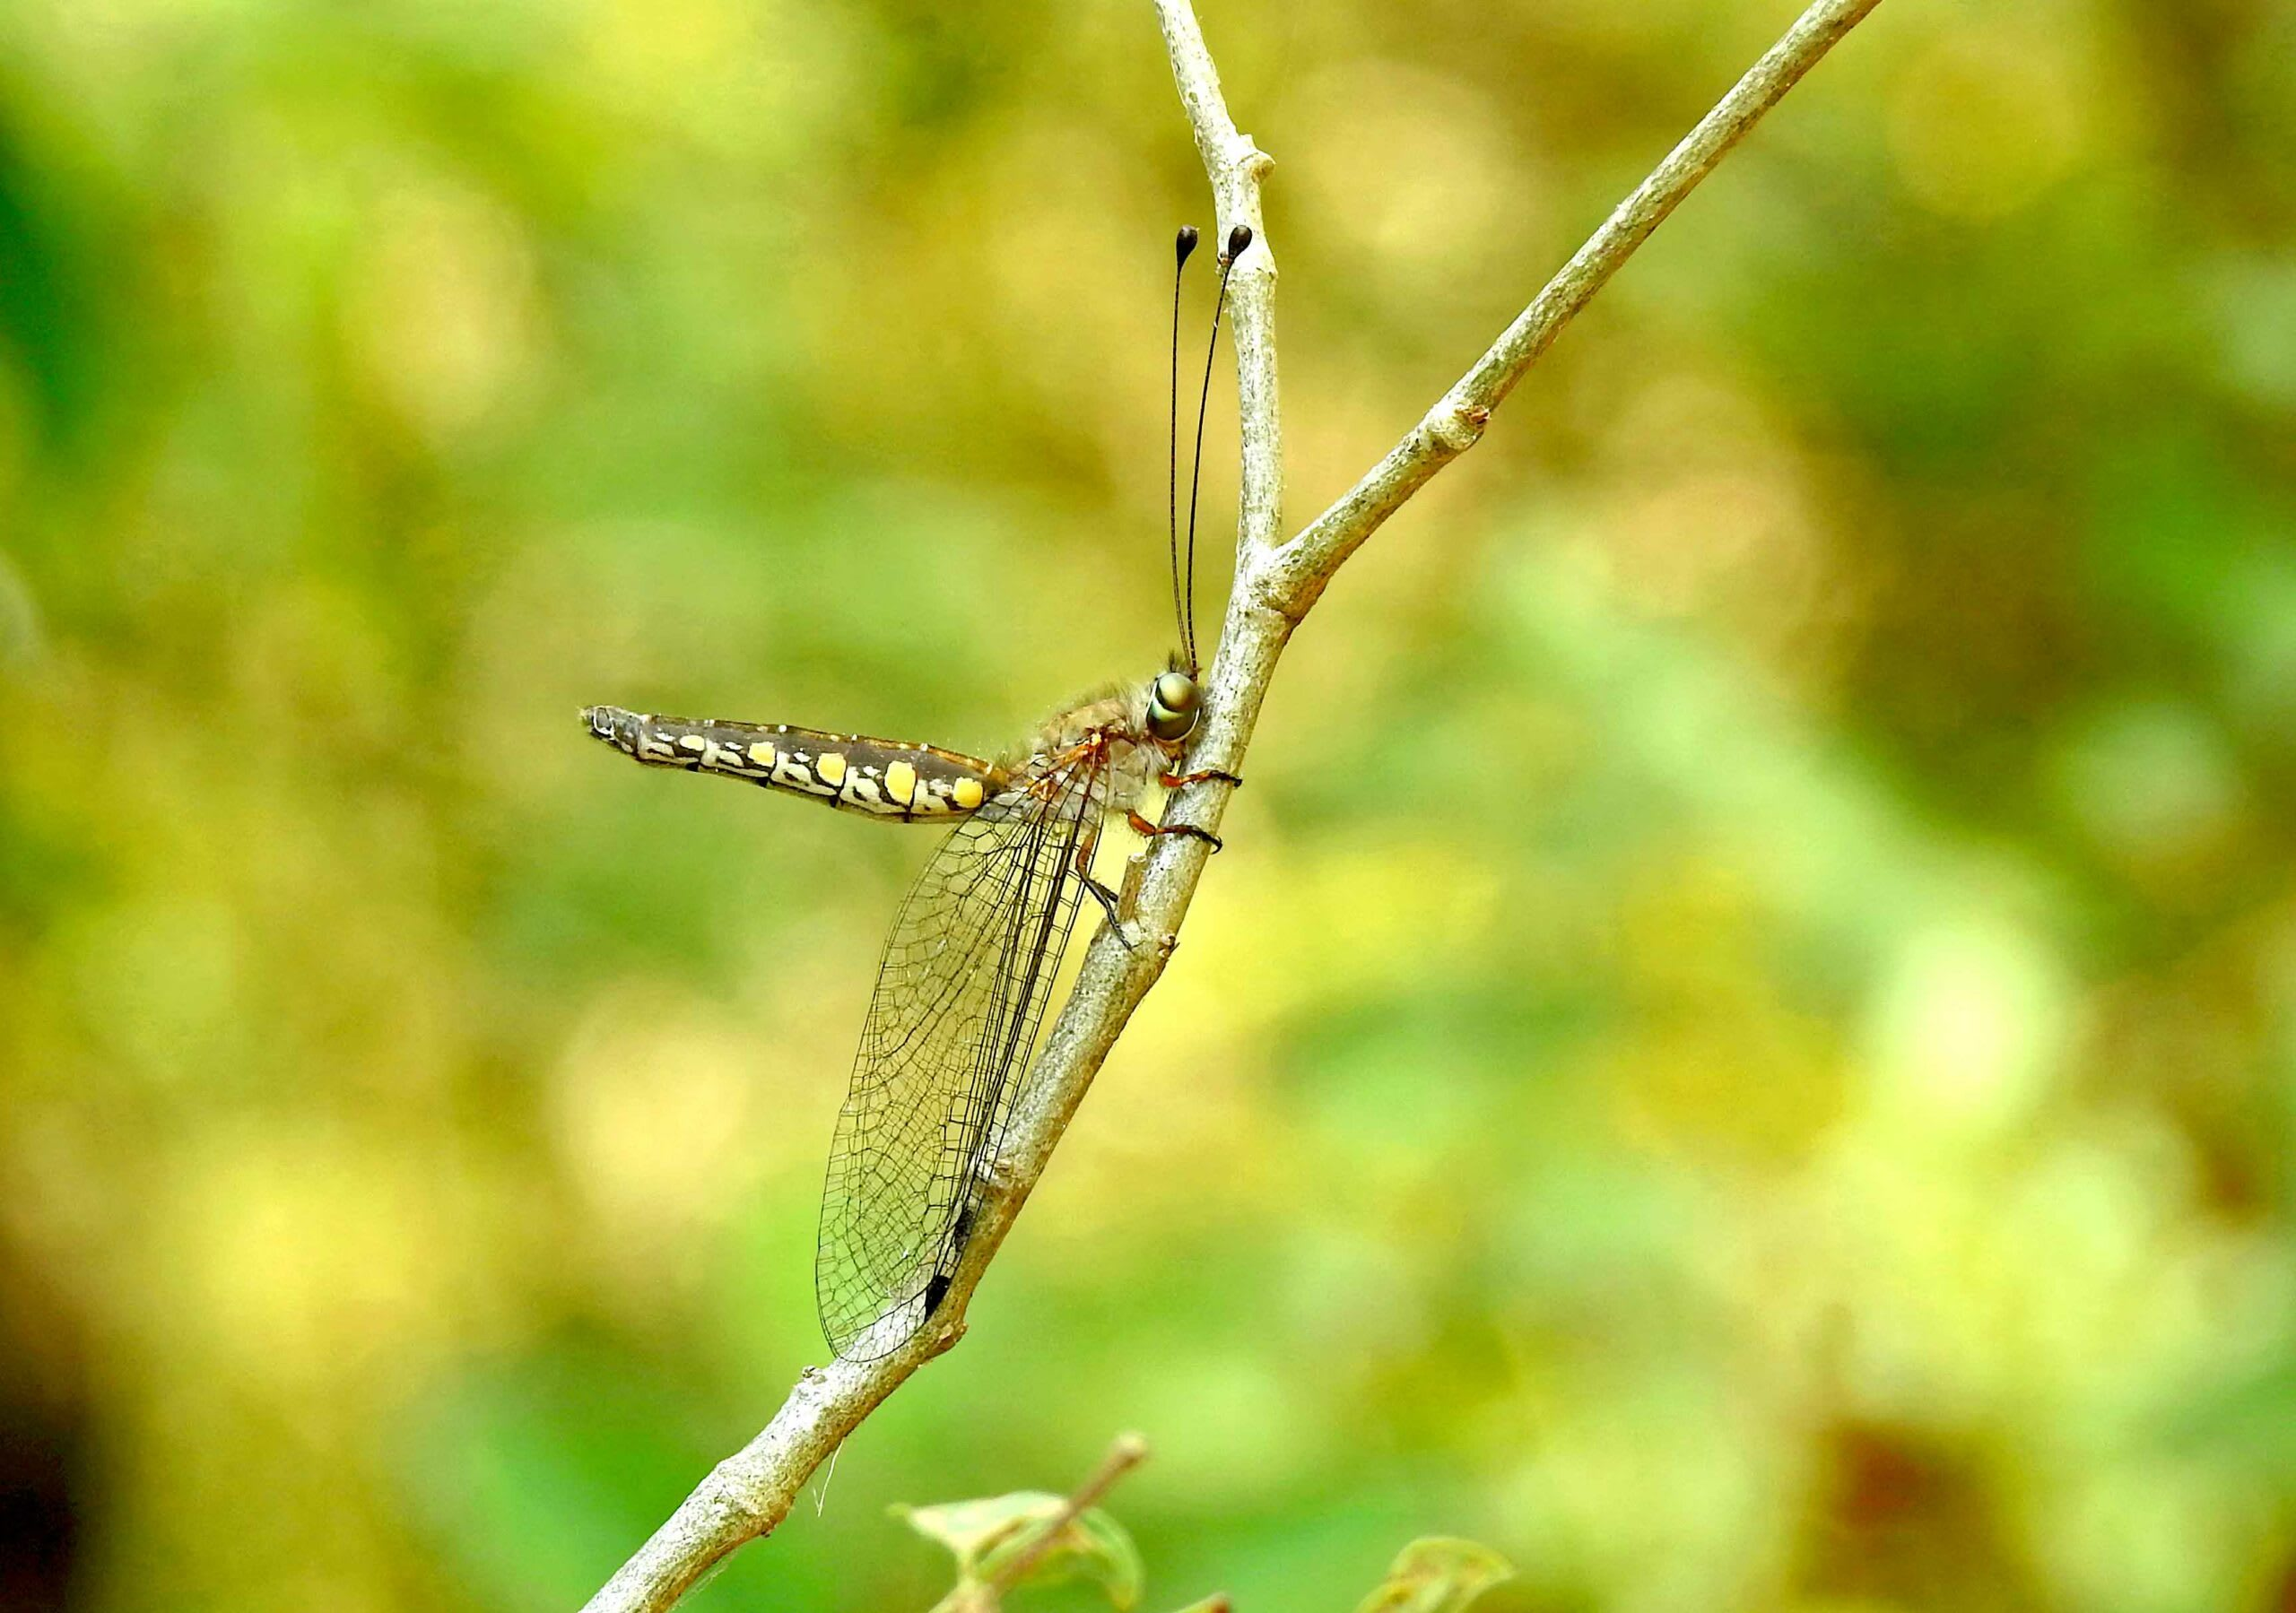 The owlfly belong to the insect order Neuroptera and resemble odonates superficially. However, they have long antennae and holometabolous (complete) metamorphosis with terrestrial larvae. Odonates have what is known as hemimetabolous (incomplete) metamorphosis, where there is no pupal stage, and their larvae are aquatic